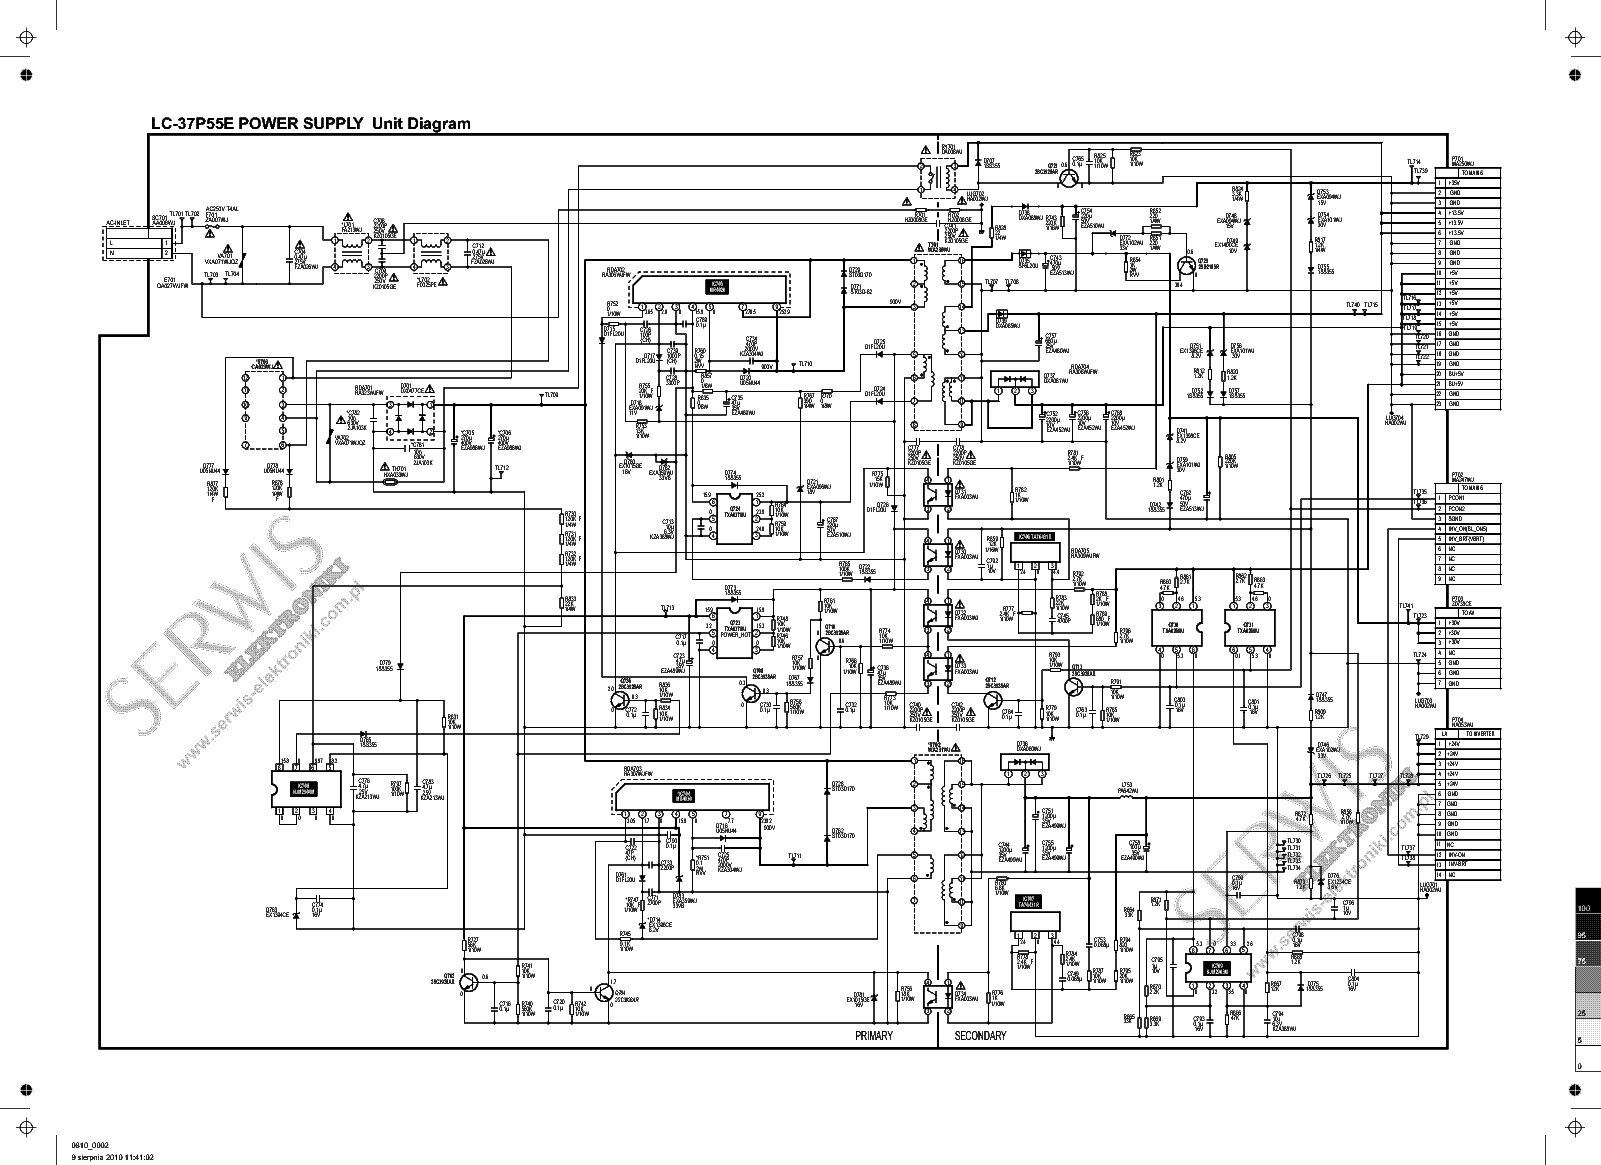 Adjustable Dc Regulated Power Supply Schematic